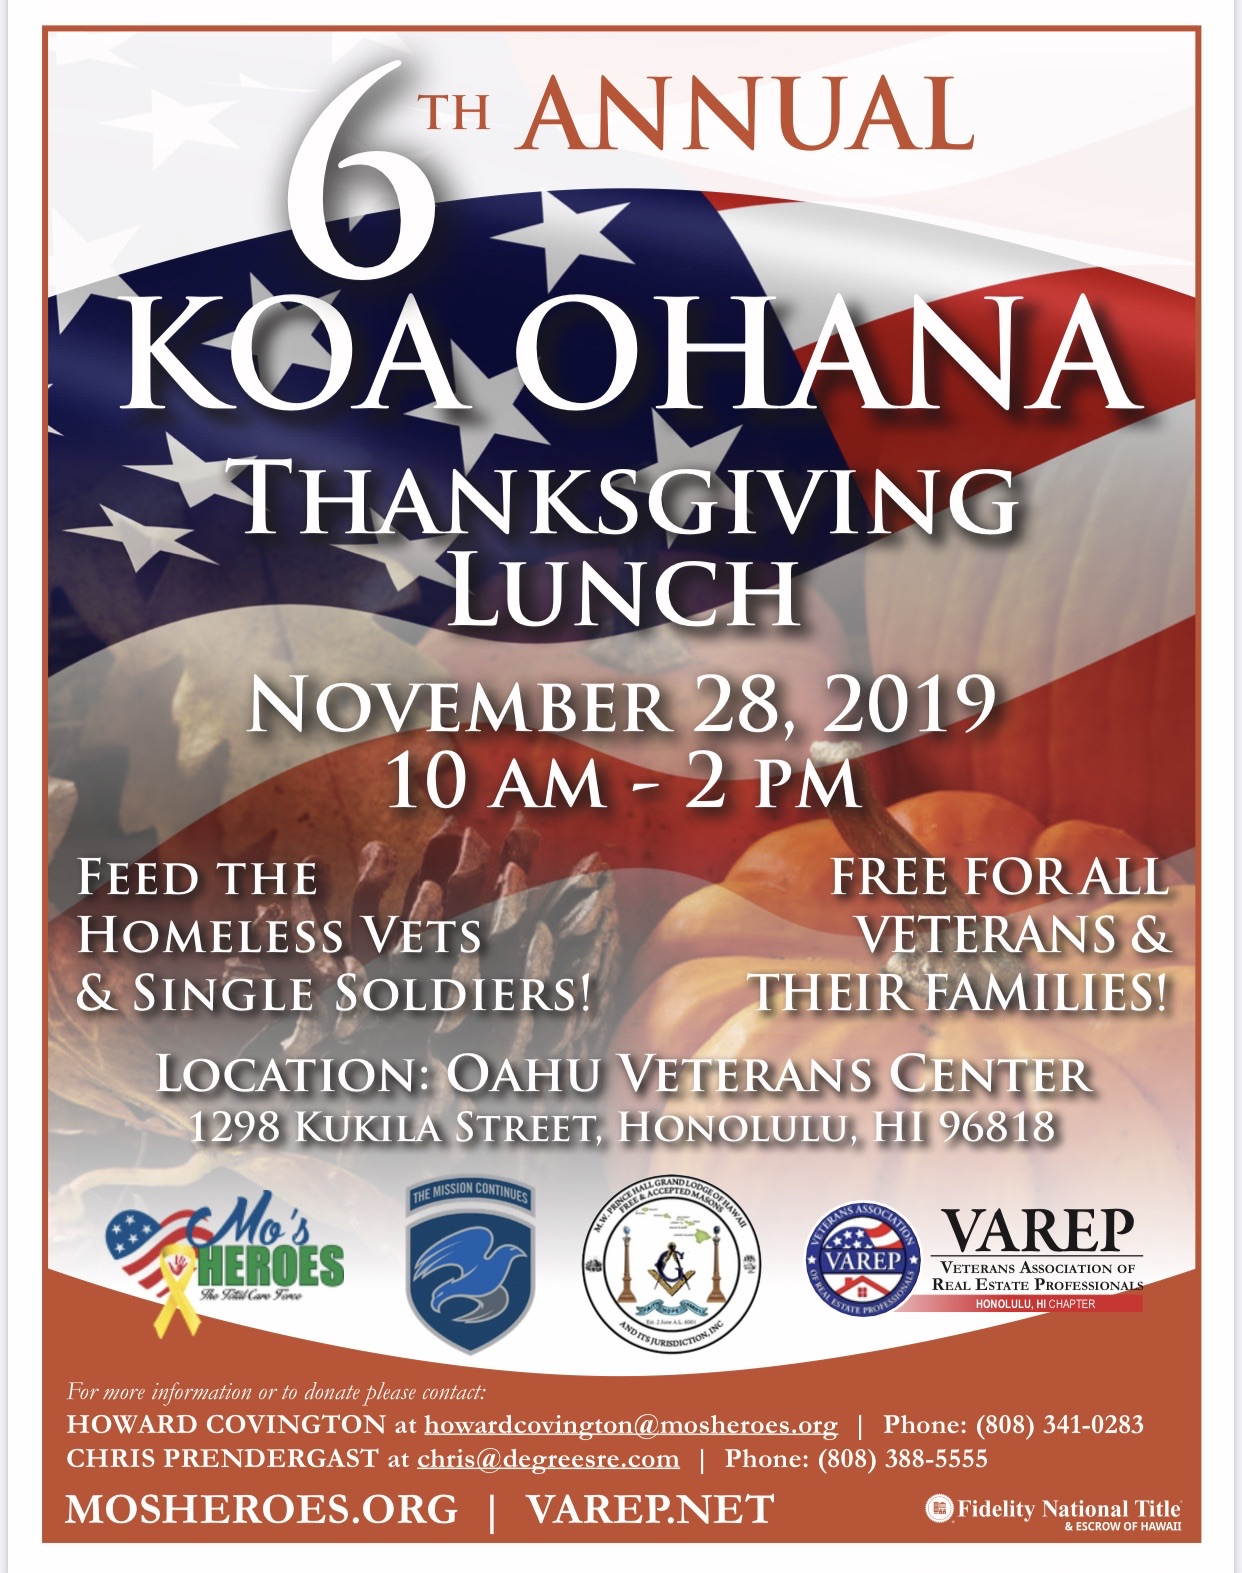 Mo\'s Heroes team up with Veterans Association of Real Estate Professionals for Thanksgiving on Nov 28